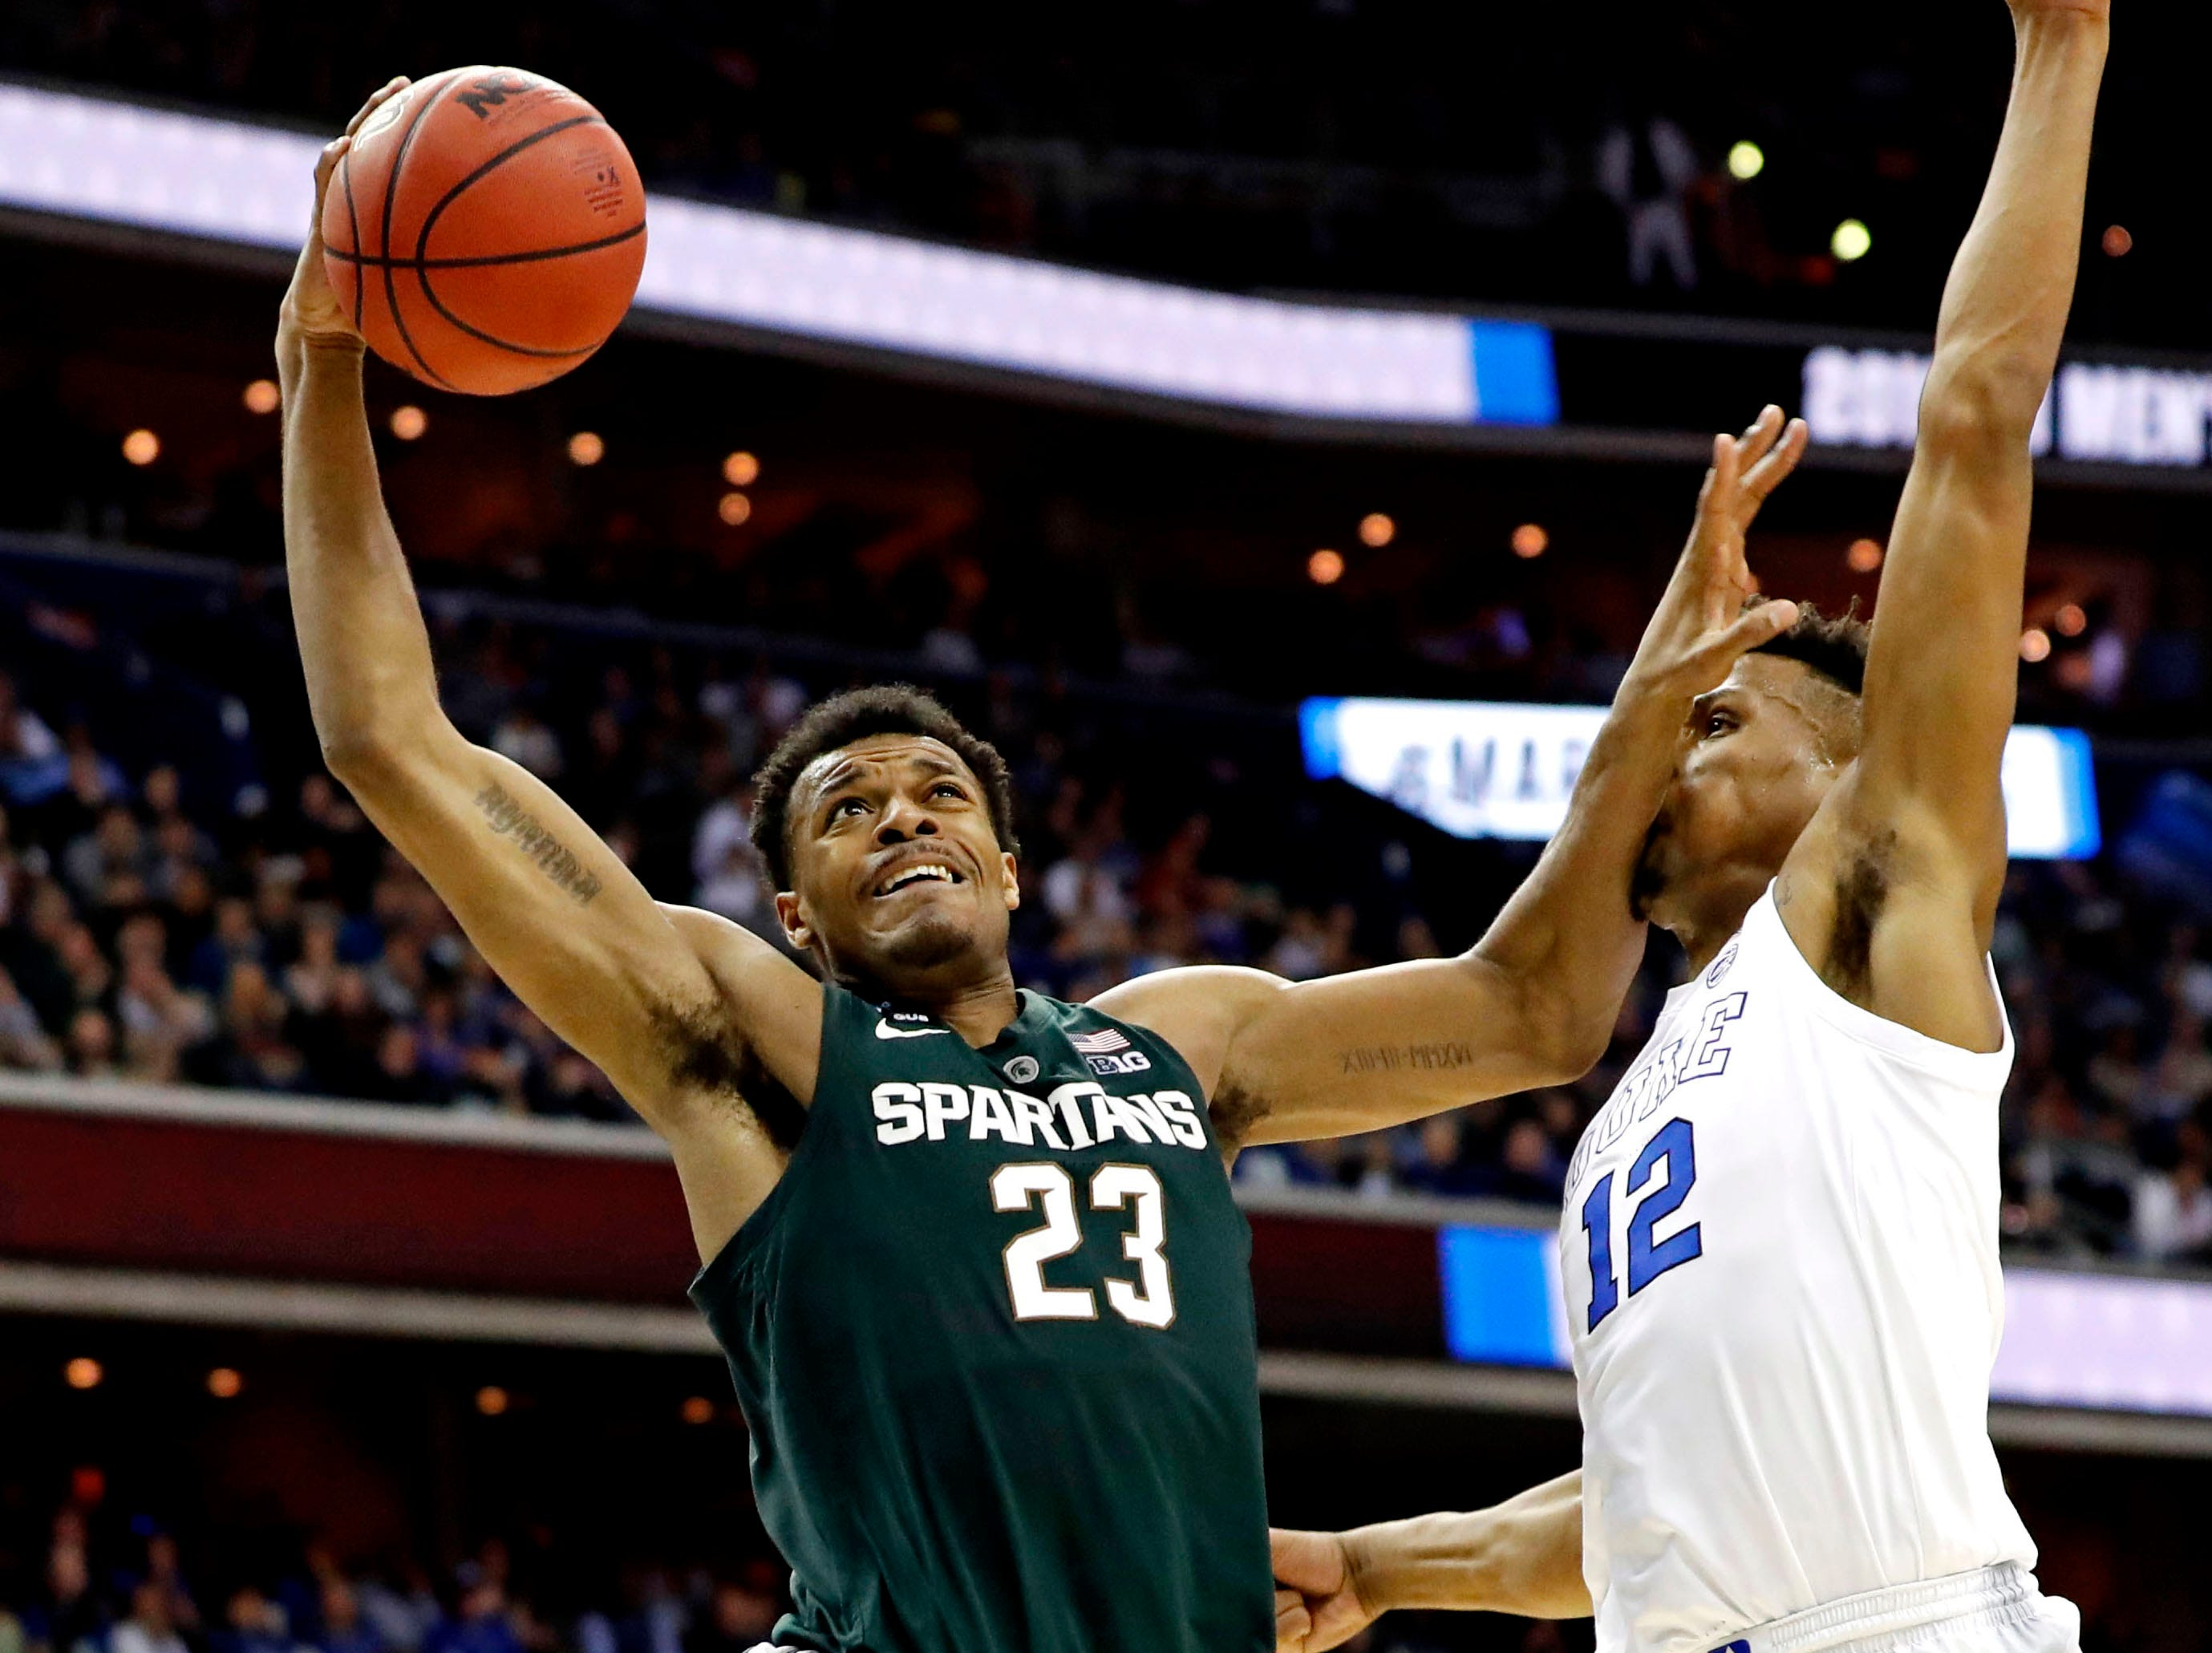 Mar 31, 2019; Washington, DC, USA; Michigan State Spartans forward Xavier Tillman (23) dunks the ball against Duke Blue Devils forward Javin DeLaurier (12) during the second half in the championship game of the east regional of the 2019 NCAA Tournament at Capital One Arena. Mandatory Credit: Geoff Burke-USA TODAY Sports